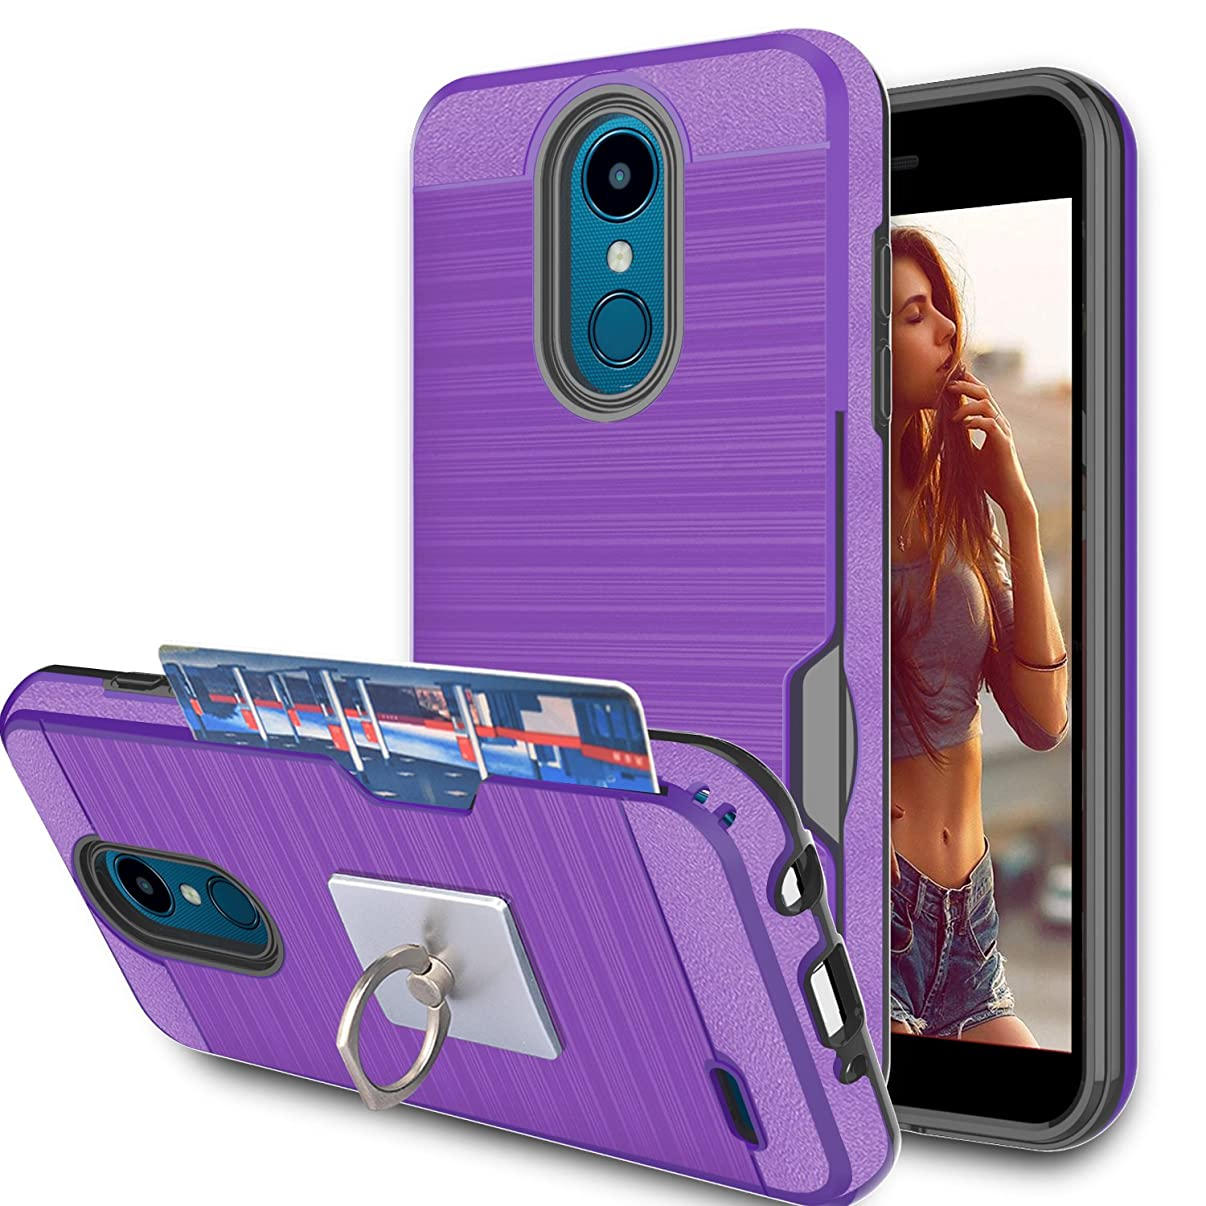 LG Zone 4 / Aristo 2 / Tribute Dynasty / K8 2018/ V3 2018 Case With Phone Stand,Ymhxcy [Credit Card Wallet Slots Holder] Hybrid Dual Layer Protective Cover Shell For LG X210MA/ X210-LCK Purple